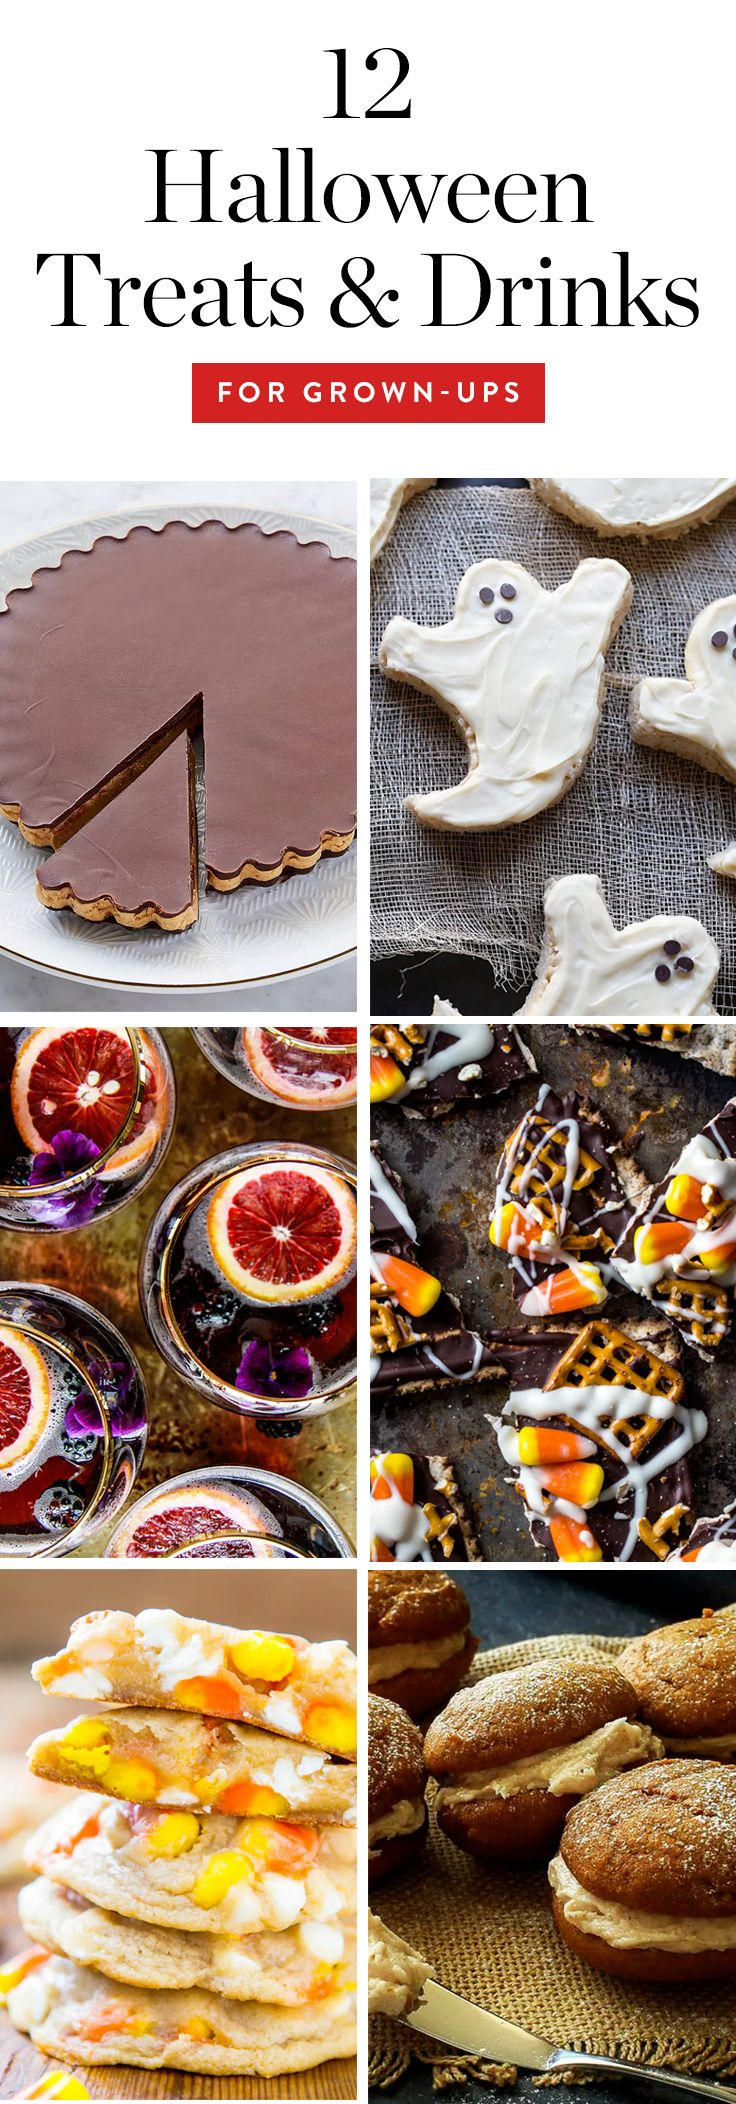 We've gathered the classiest Halloween treats and drinks to serve at a grown-up halloween party. #halloween #halloweentreats #halloweendrinks #halloweensnacks